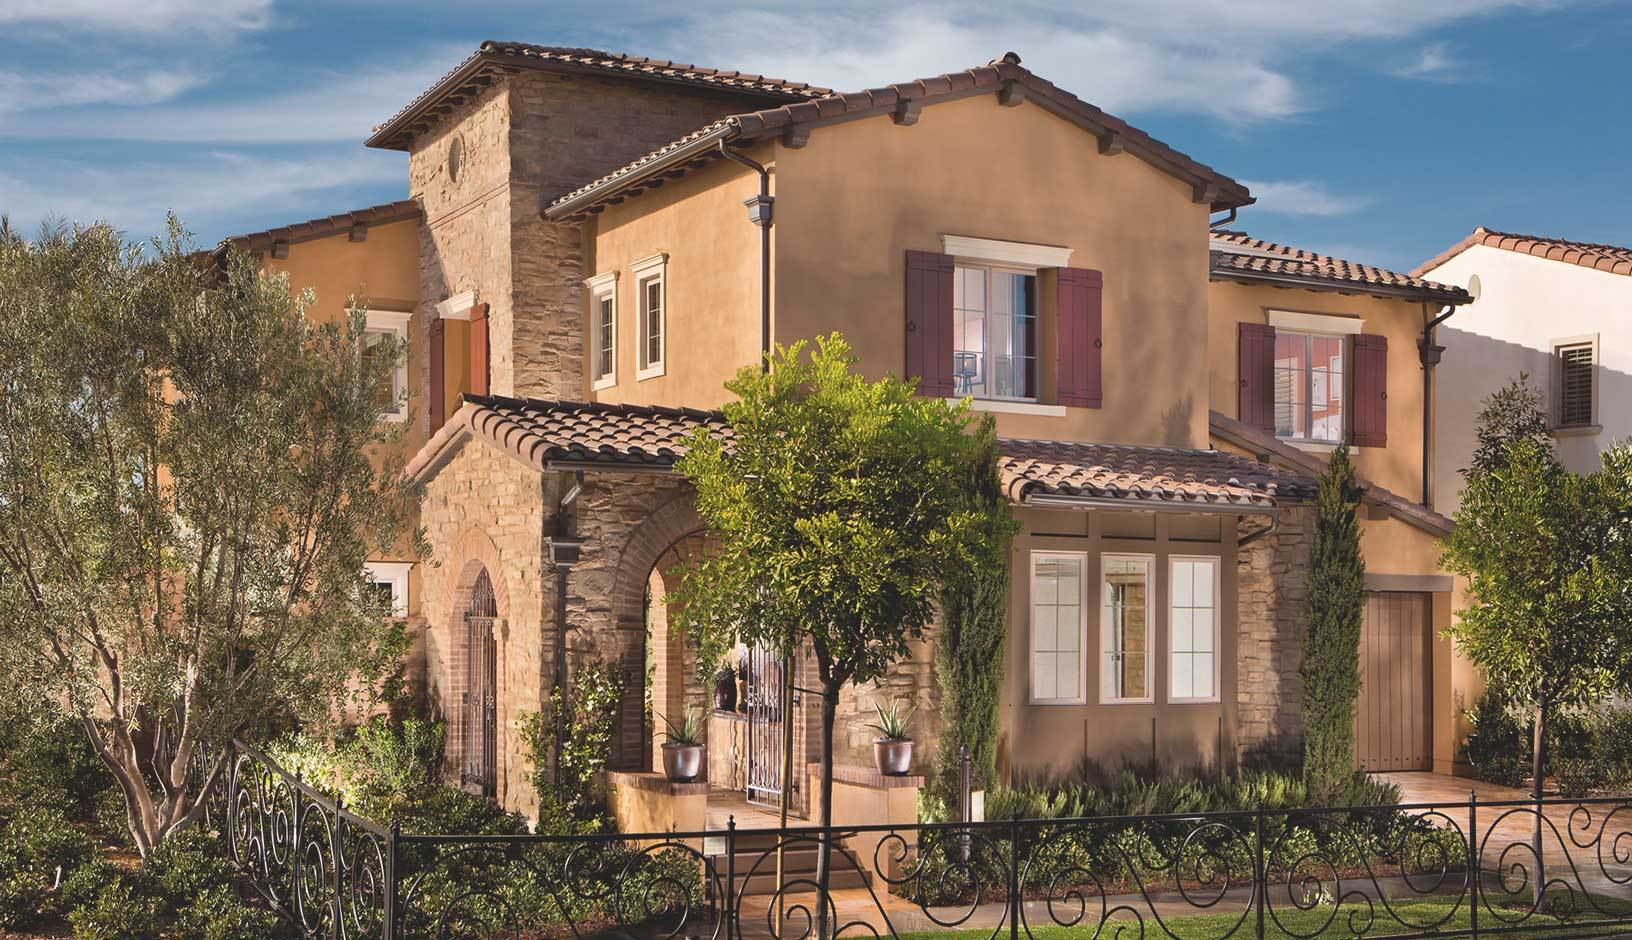 gated community in orange county, ca new homes for sale| newhomesource